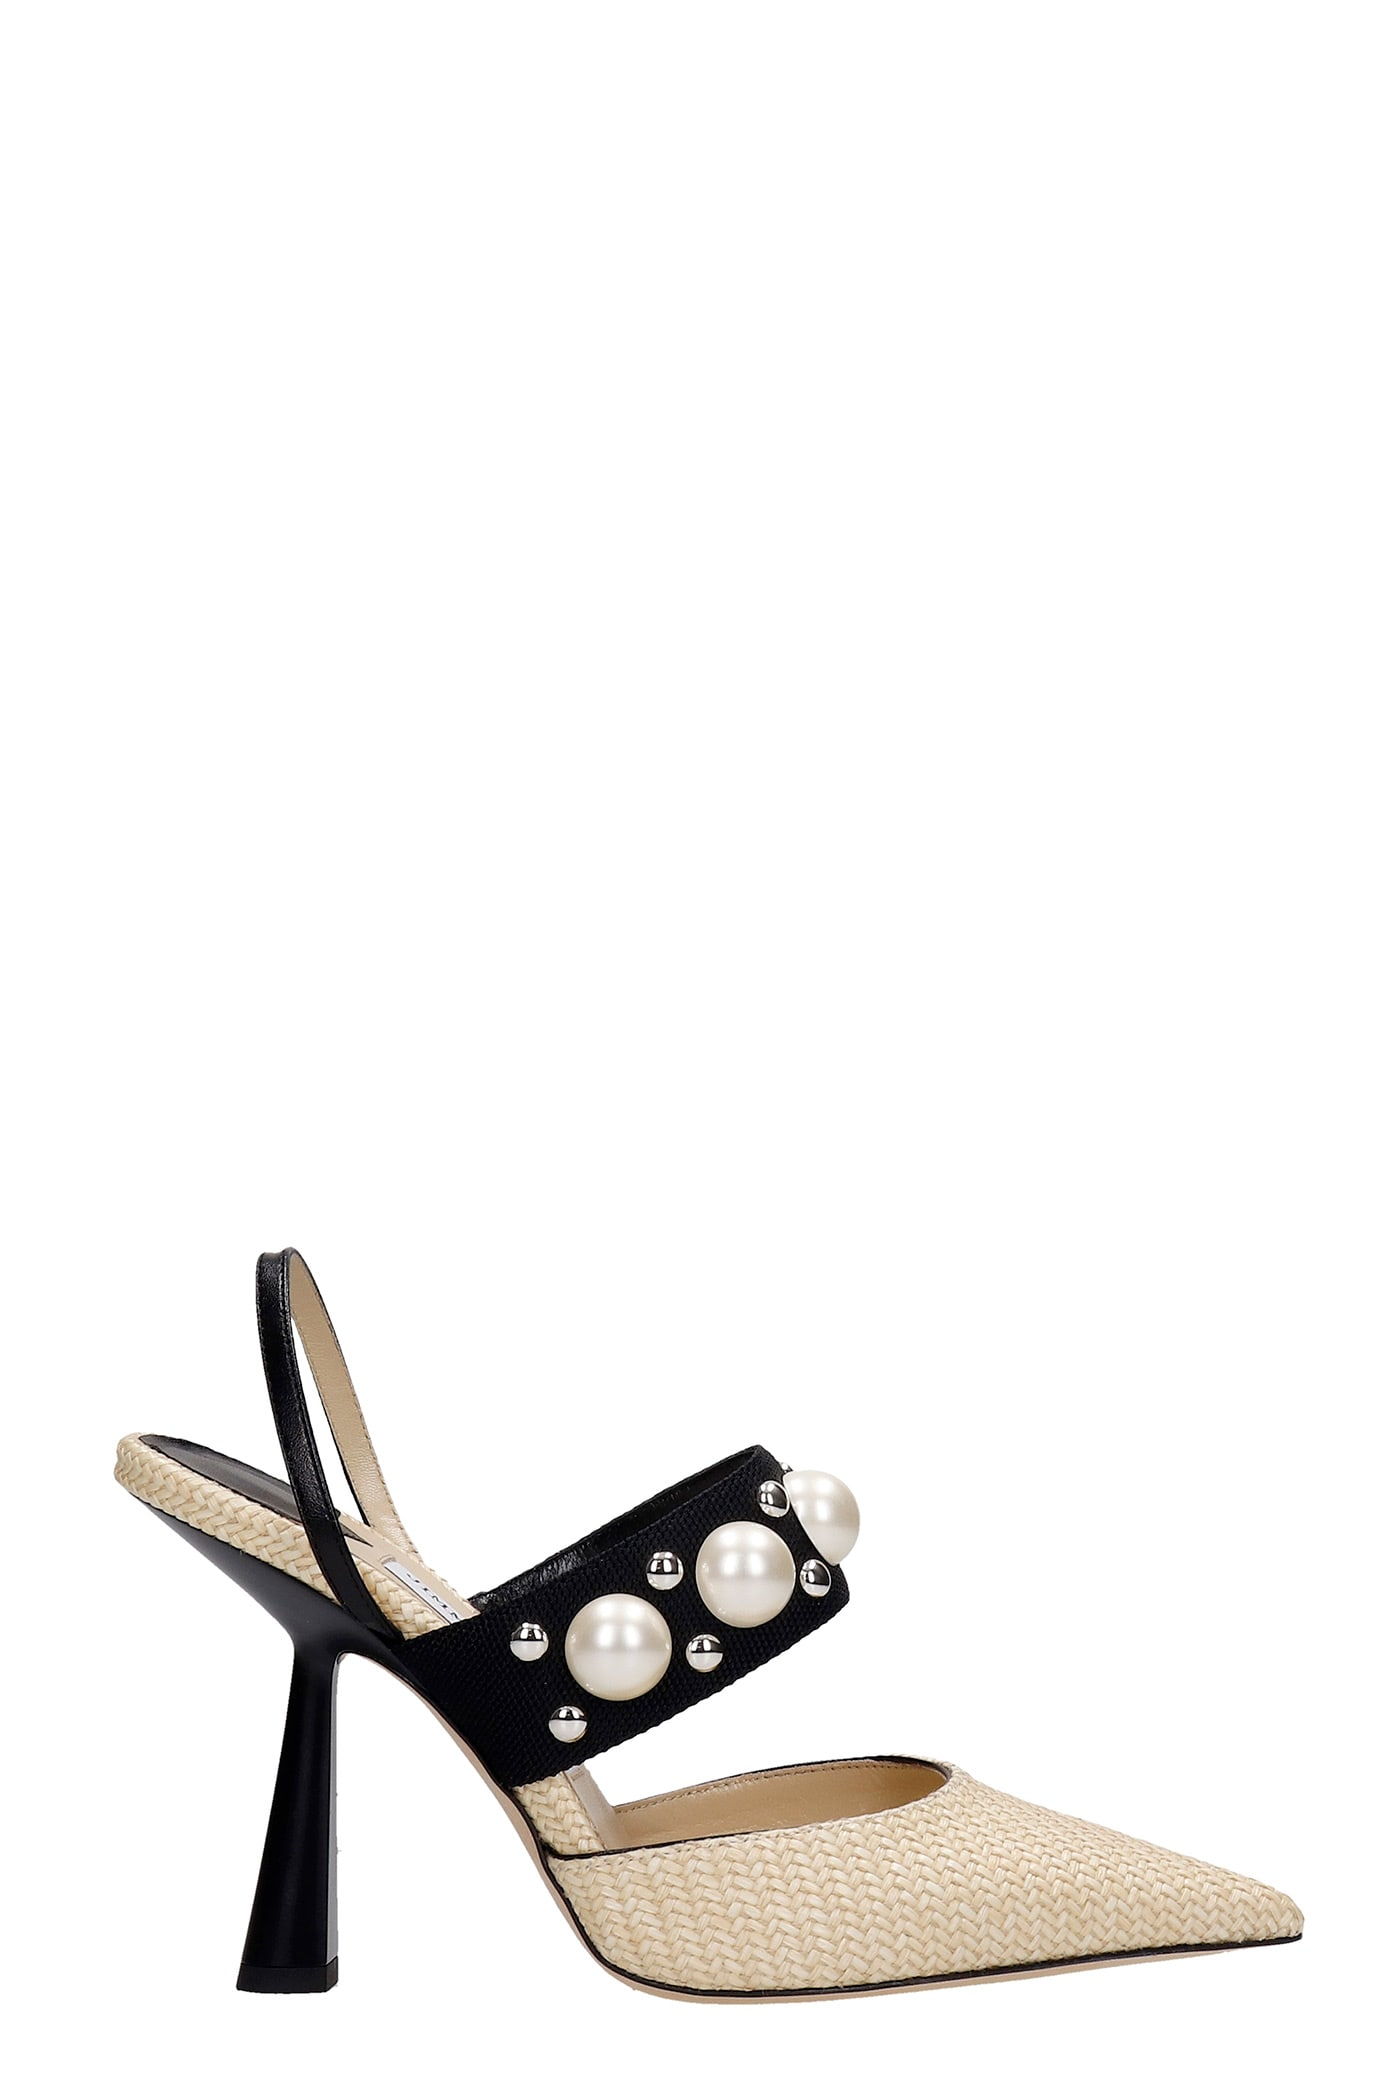 Buy Jimmy Choo Breslin Sandals In Beige Leather And Fabric online, shop Jimmy Choo shoes with free shipping